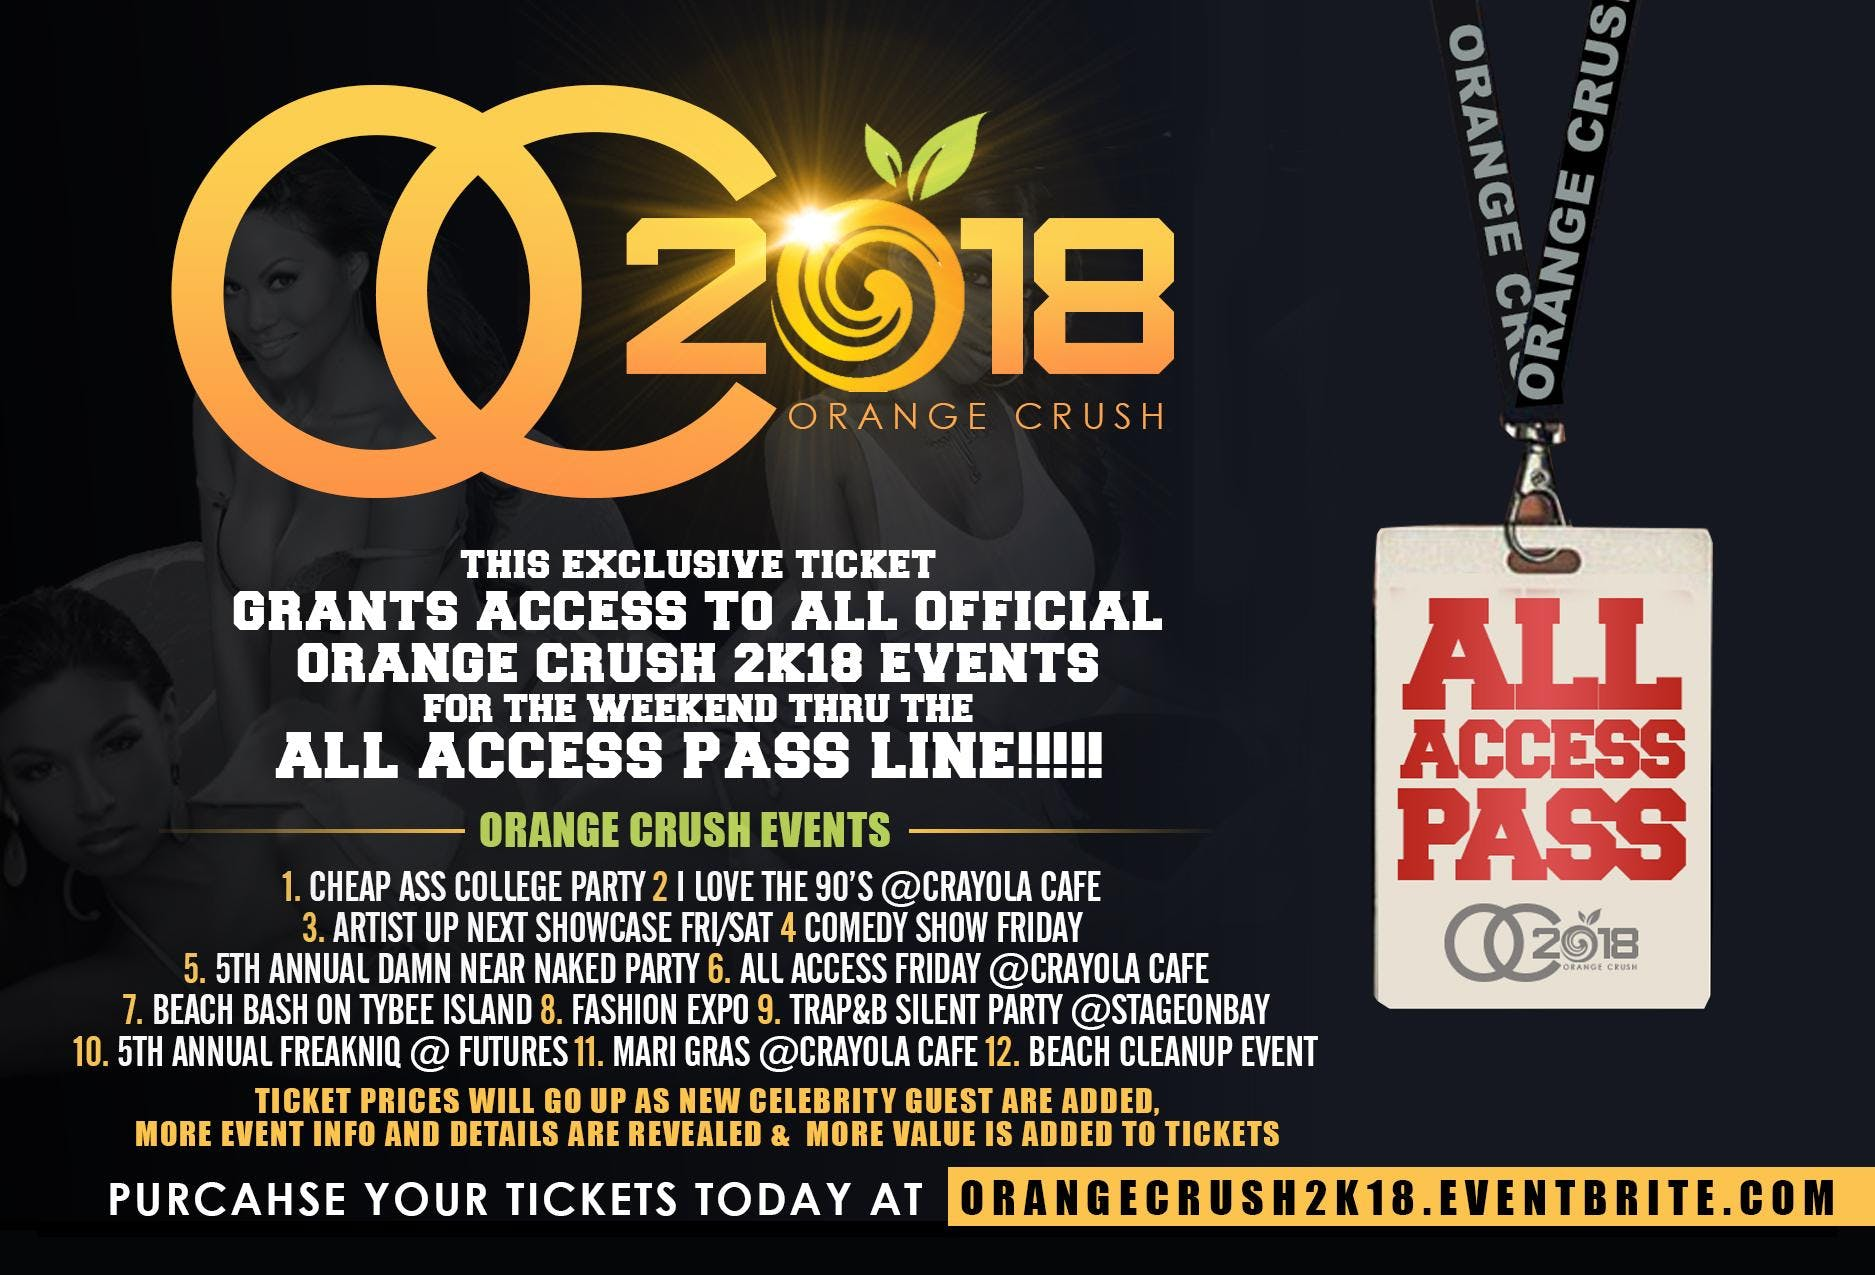 ALL ACCESS WEEKEND PASS 4 ALL ORANGE CRUSH 2k18 EVENTS